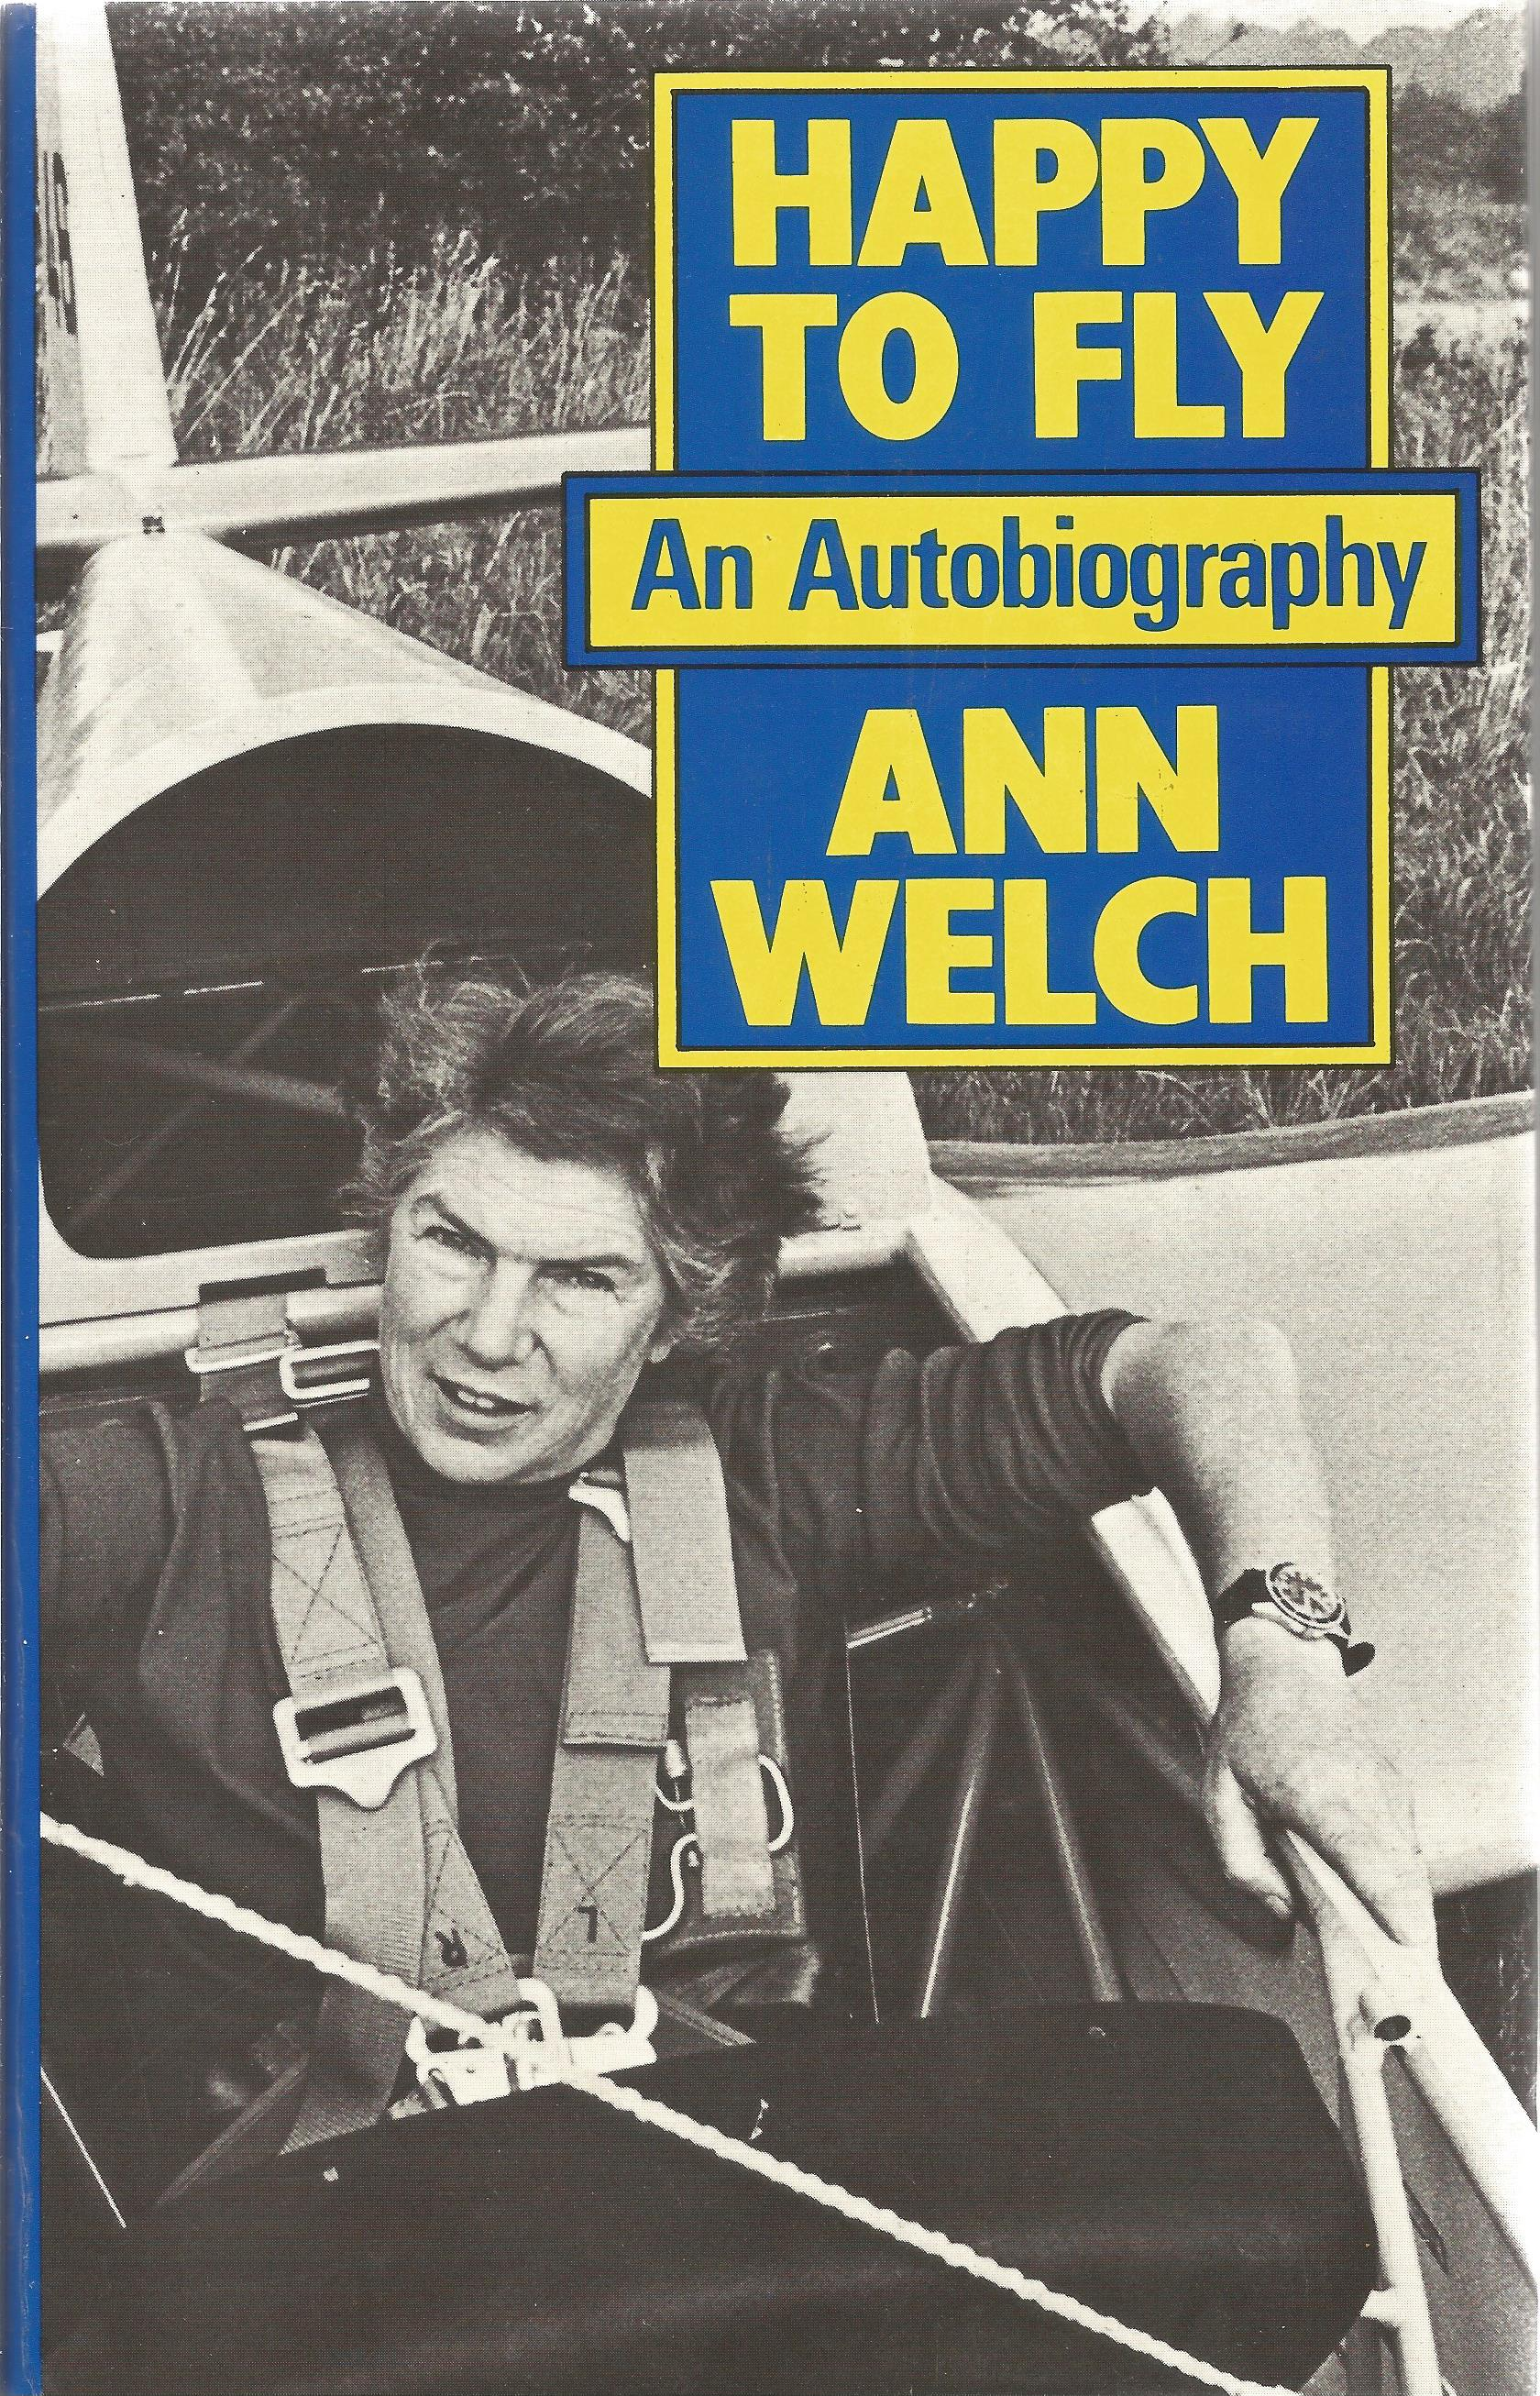 Ann Welch Hardback Book Happy to Fly An Autobiography signed by the Author on the Title Page First